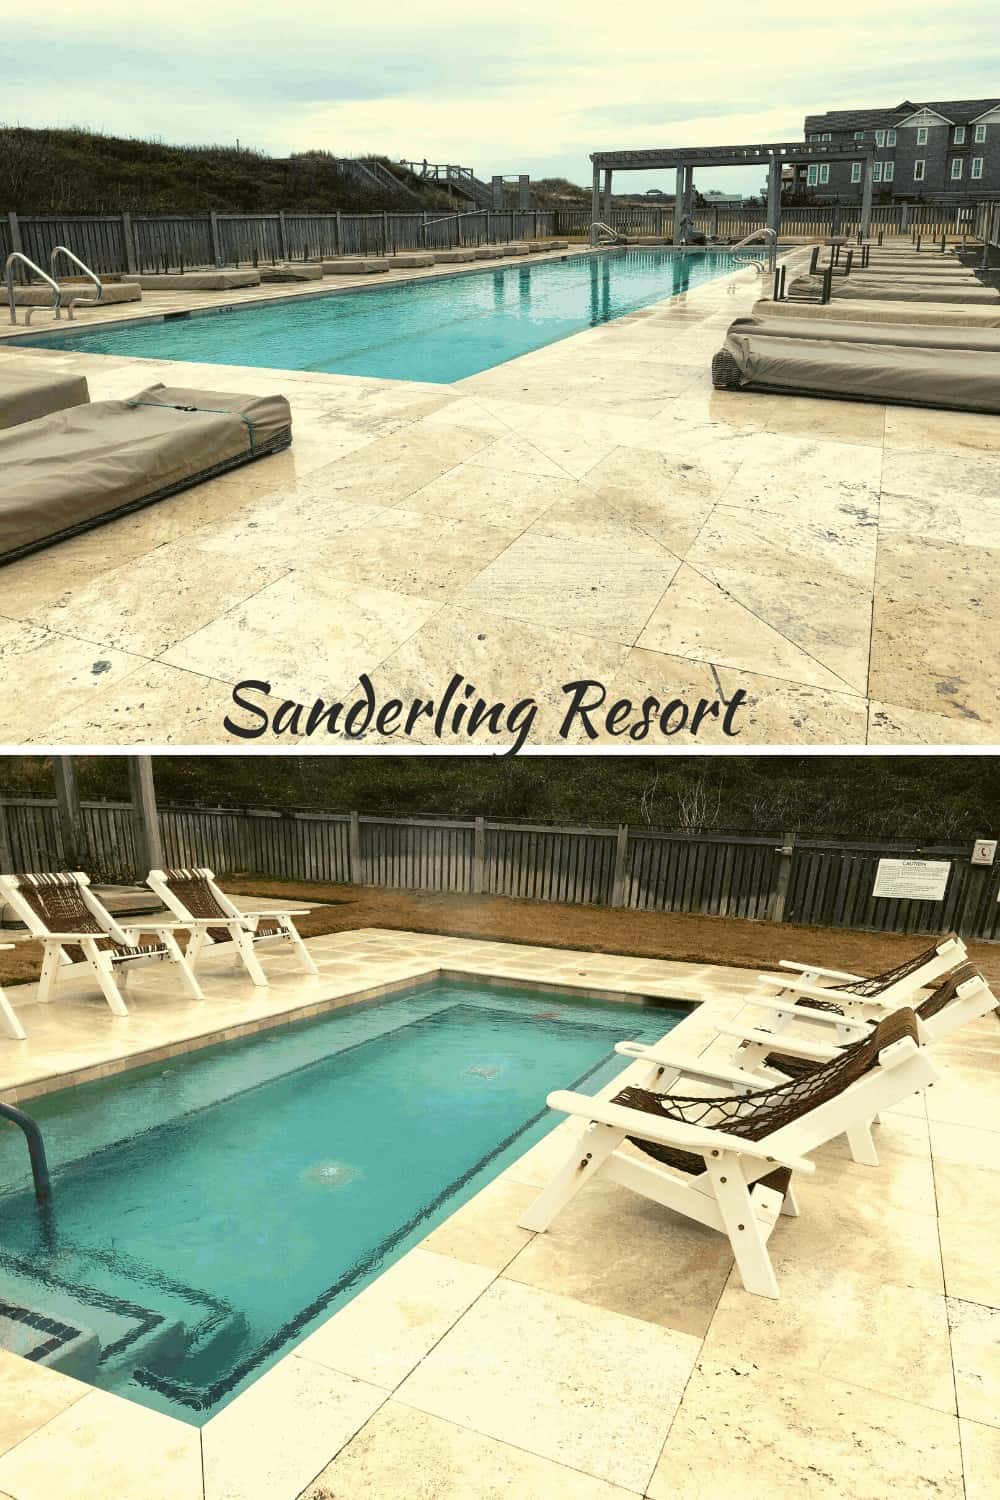 Pools at Sanderling Resort